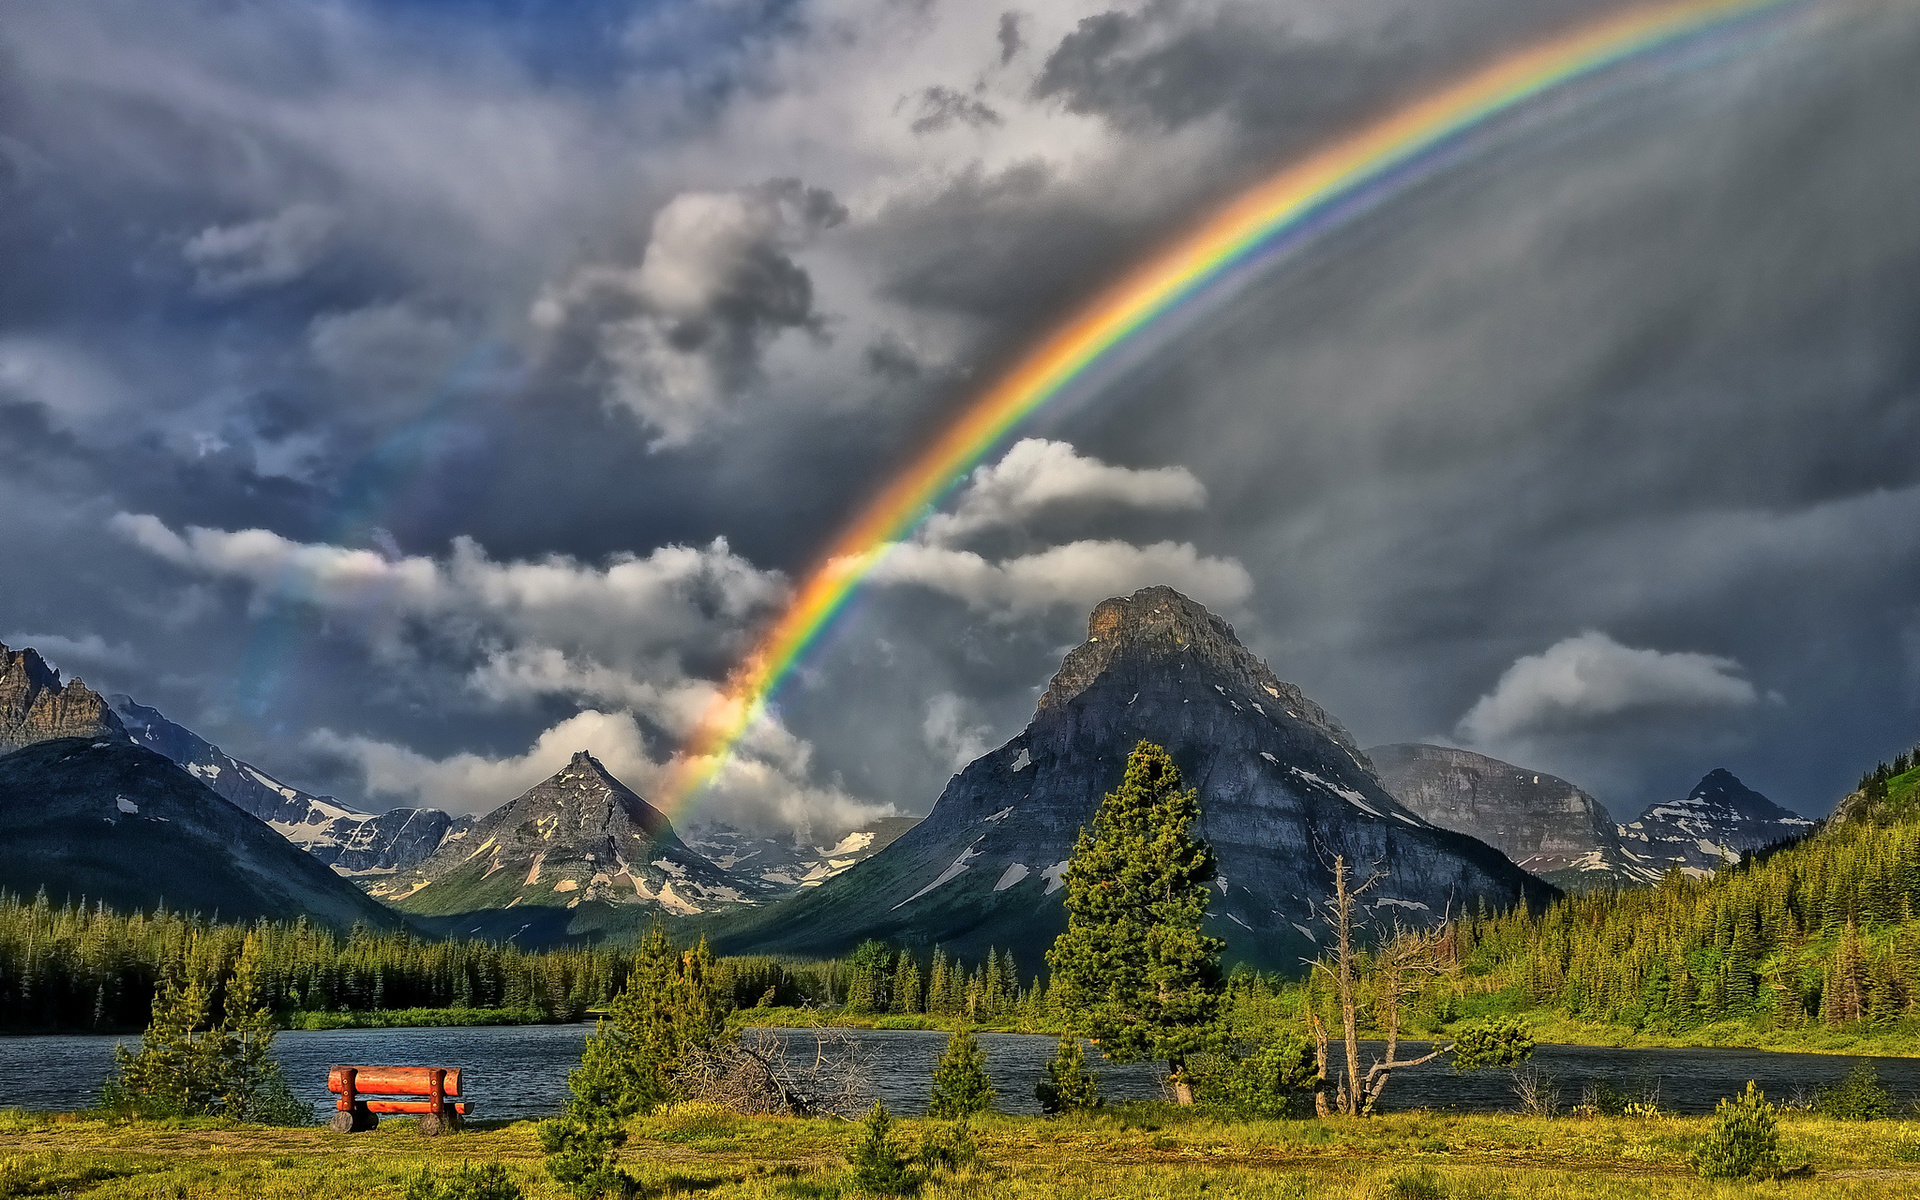 Original Iphone Wallpaper Earth Rainbow Full Hd Wallpaper And Background 1920x1200 Id